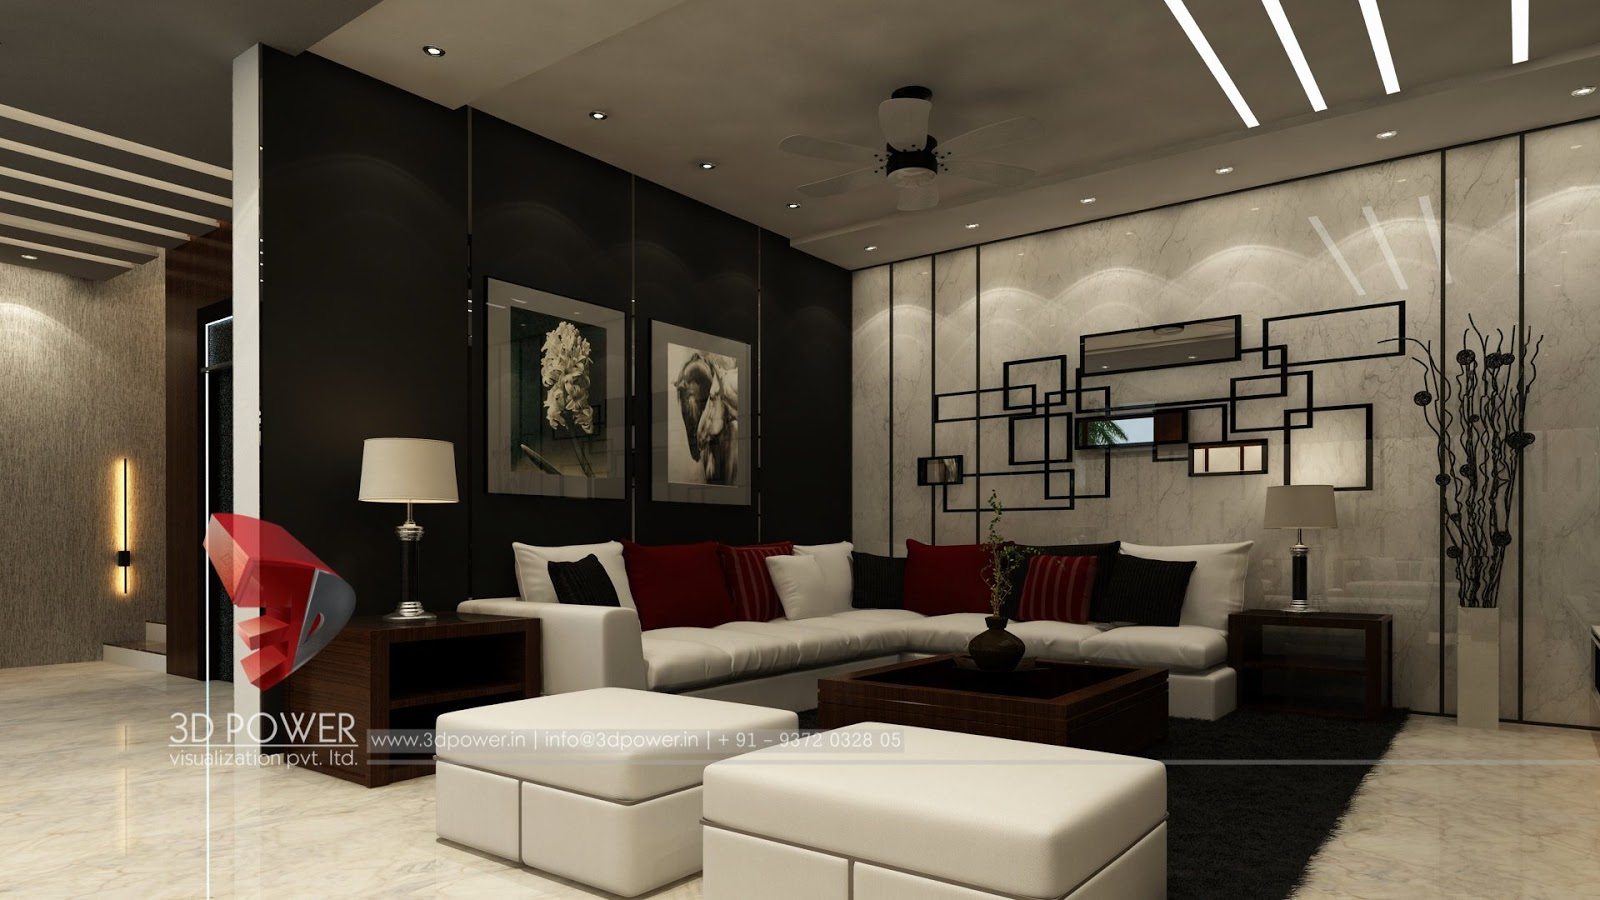 Interior Design Ideas For Living Rooms: Interior Designer: High Class Living